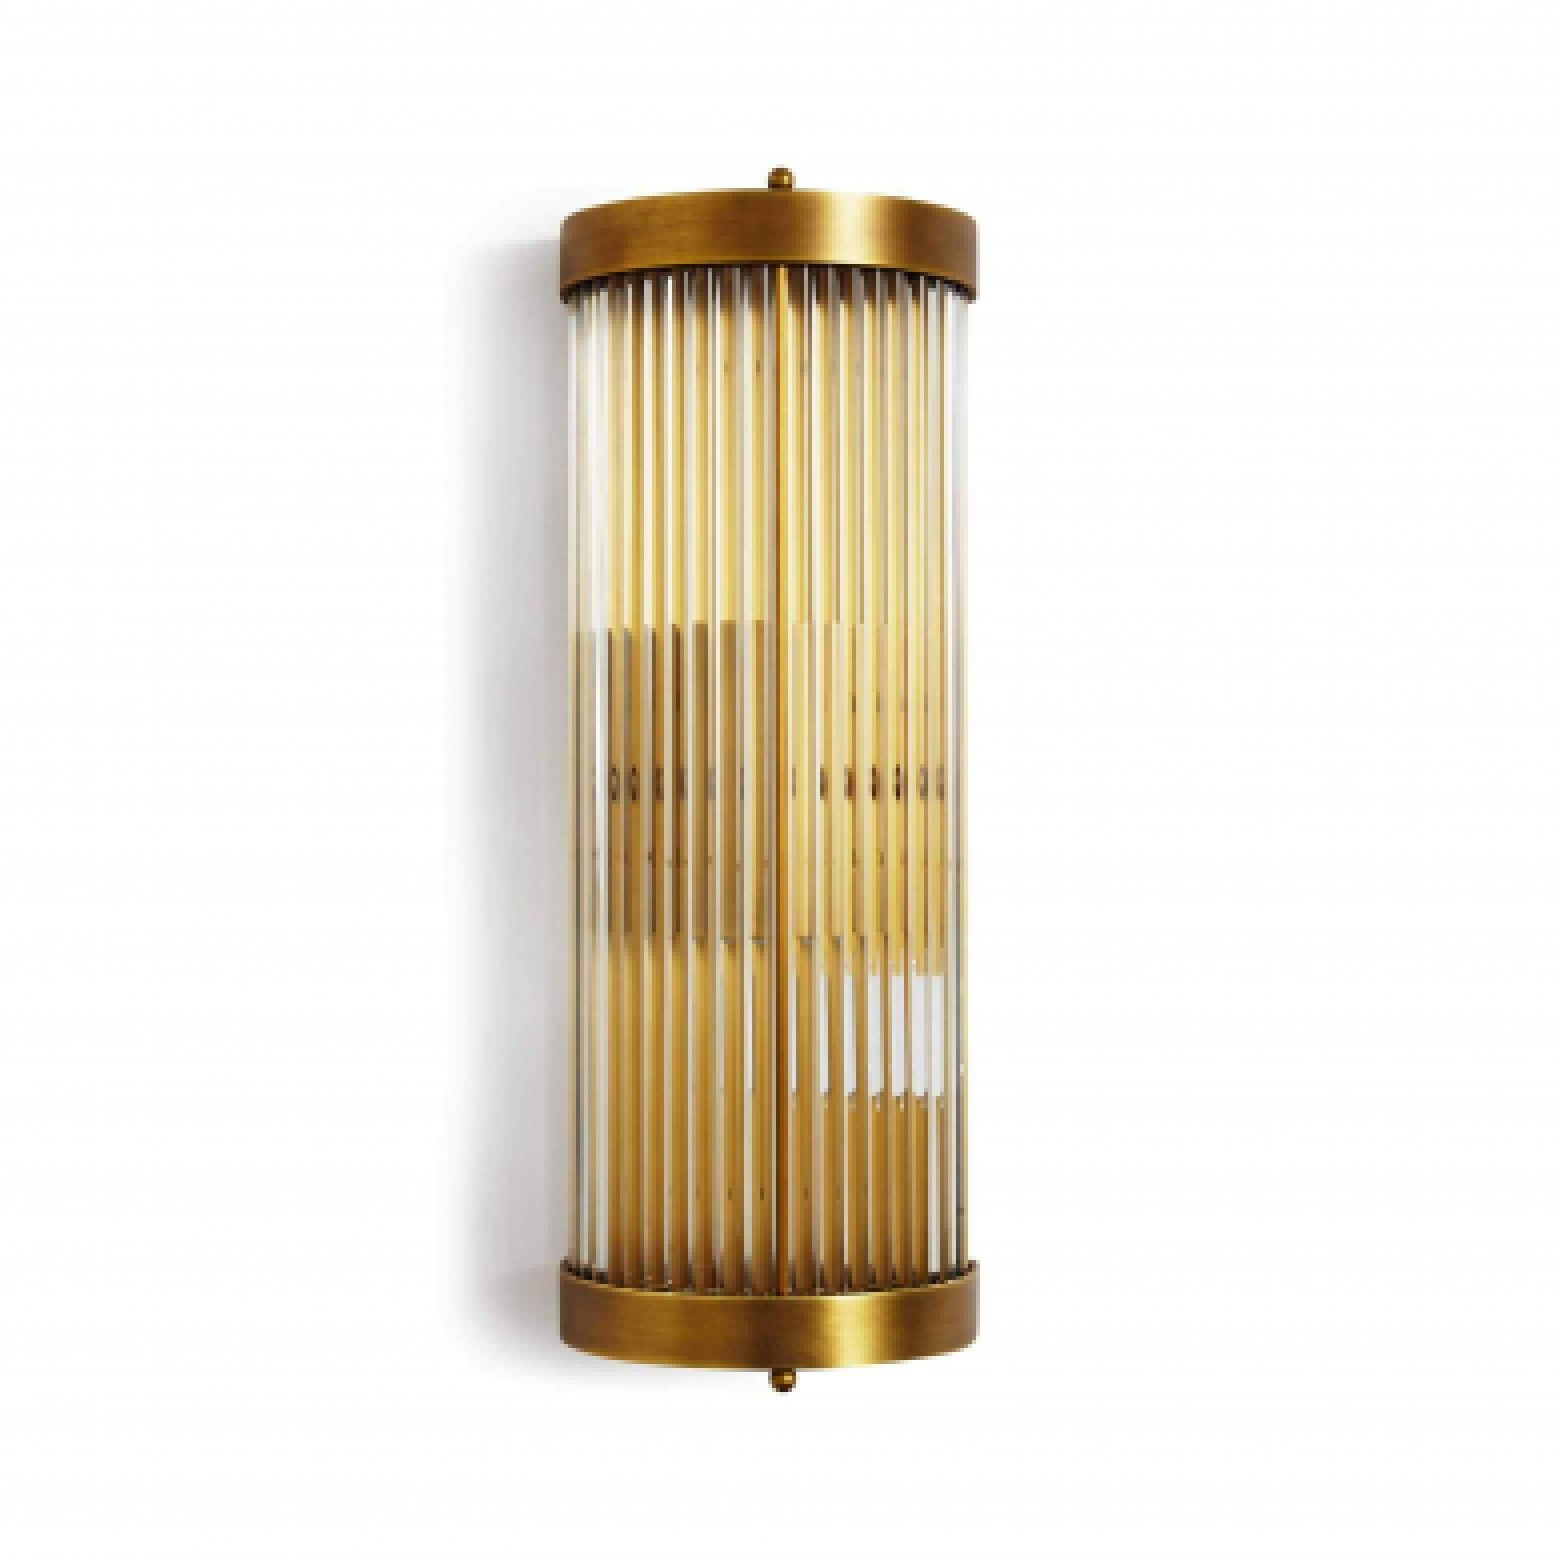 Wall Uplighters Google Search Art Deco Wall Lights Art Deco Lighting Art Deco Lamps